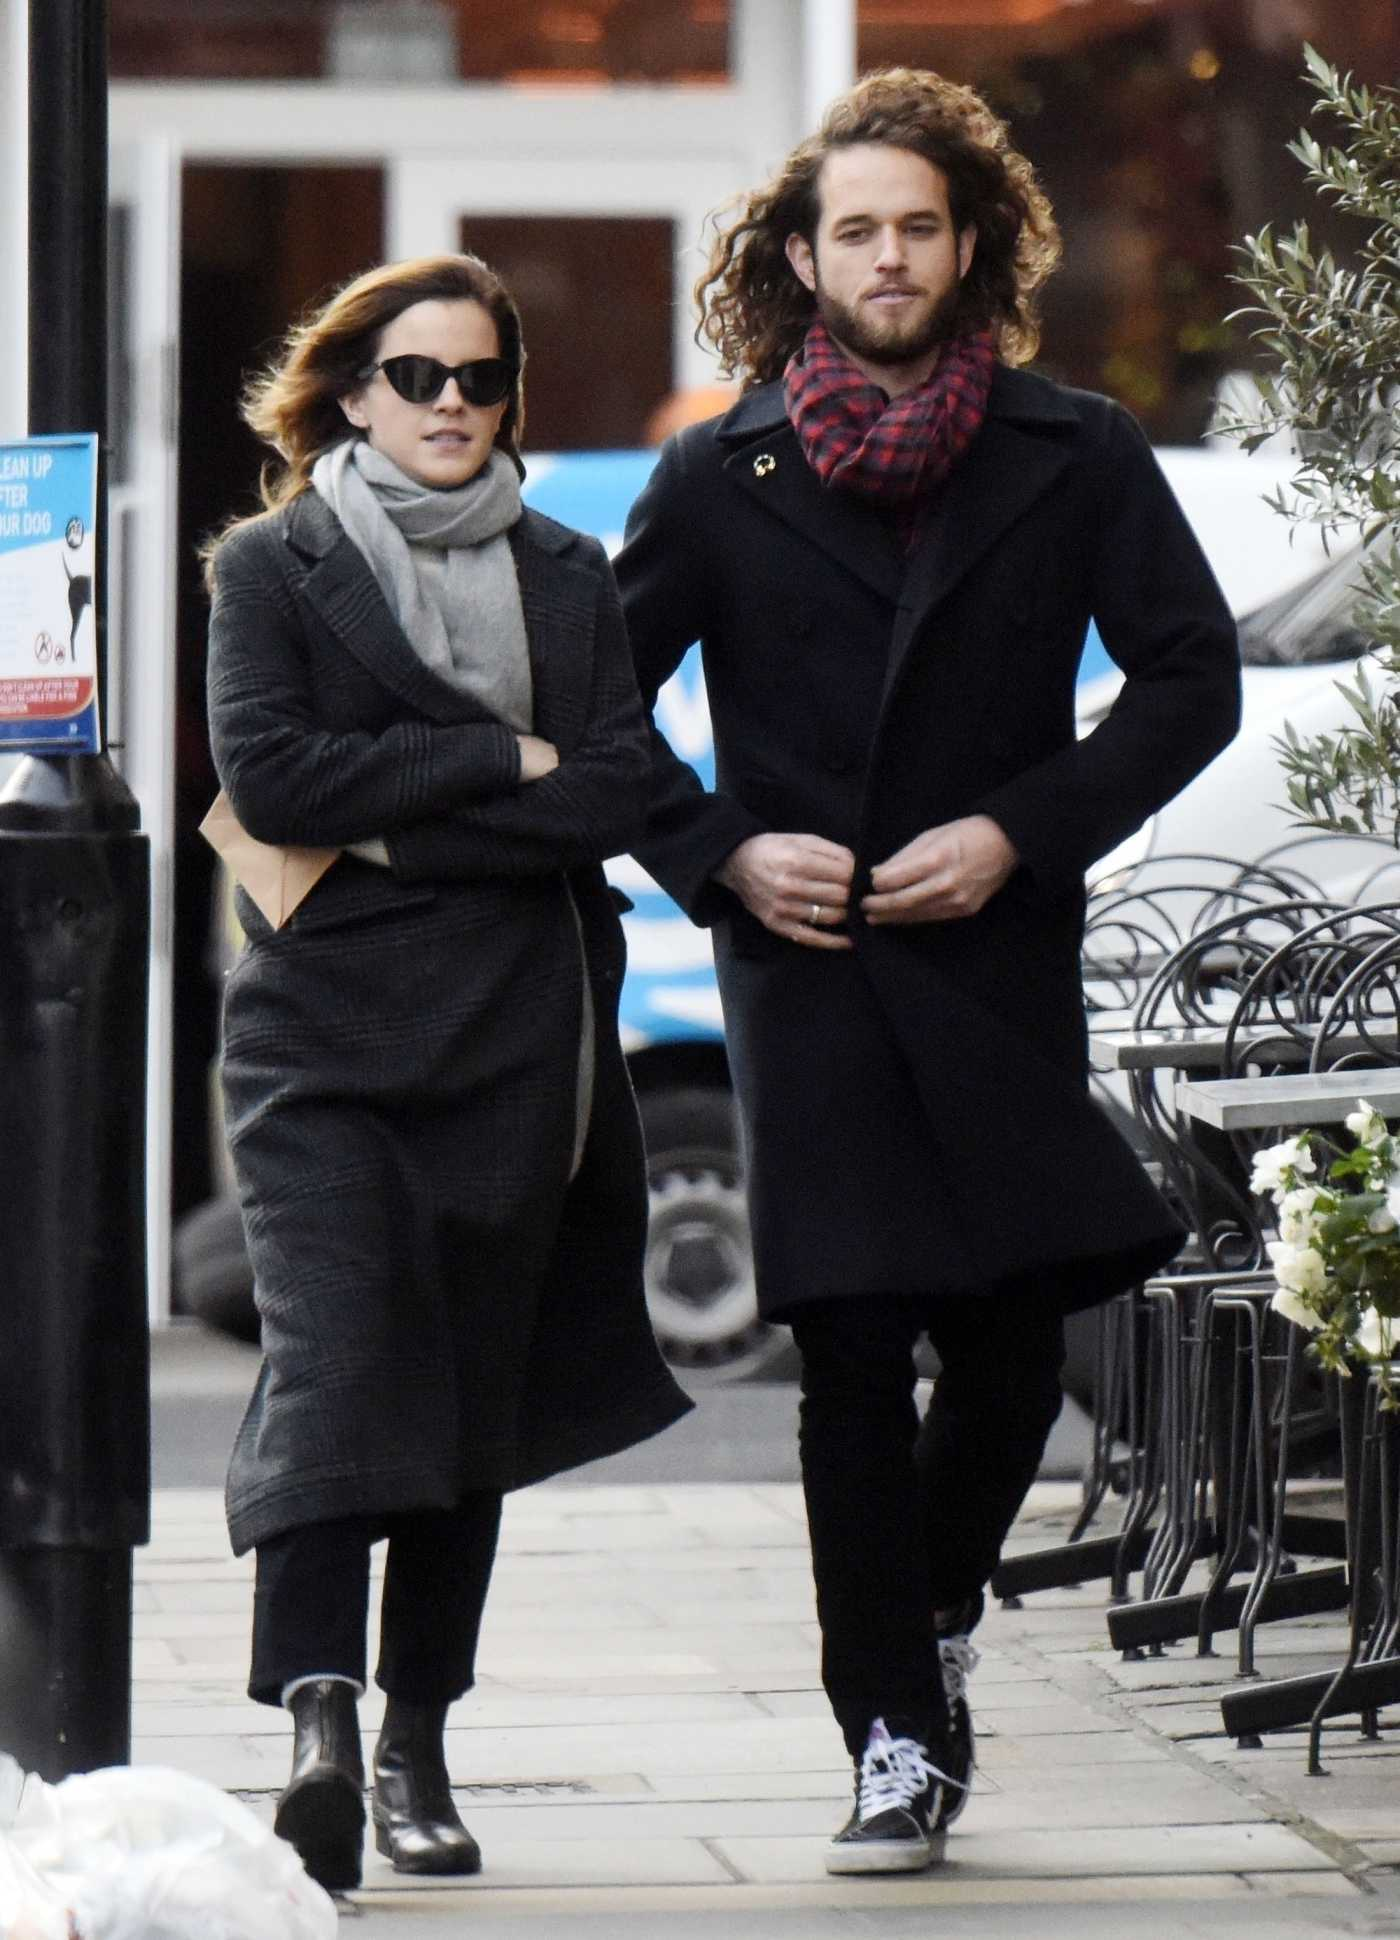 Emma Watson in a Gray Coat Was Seen Out with Her Mystery Boyfriend in London 12/18/2019